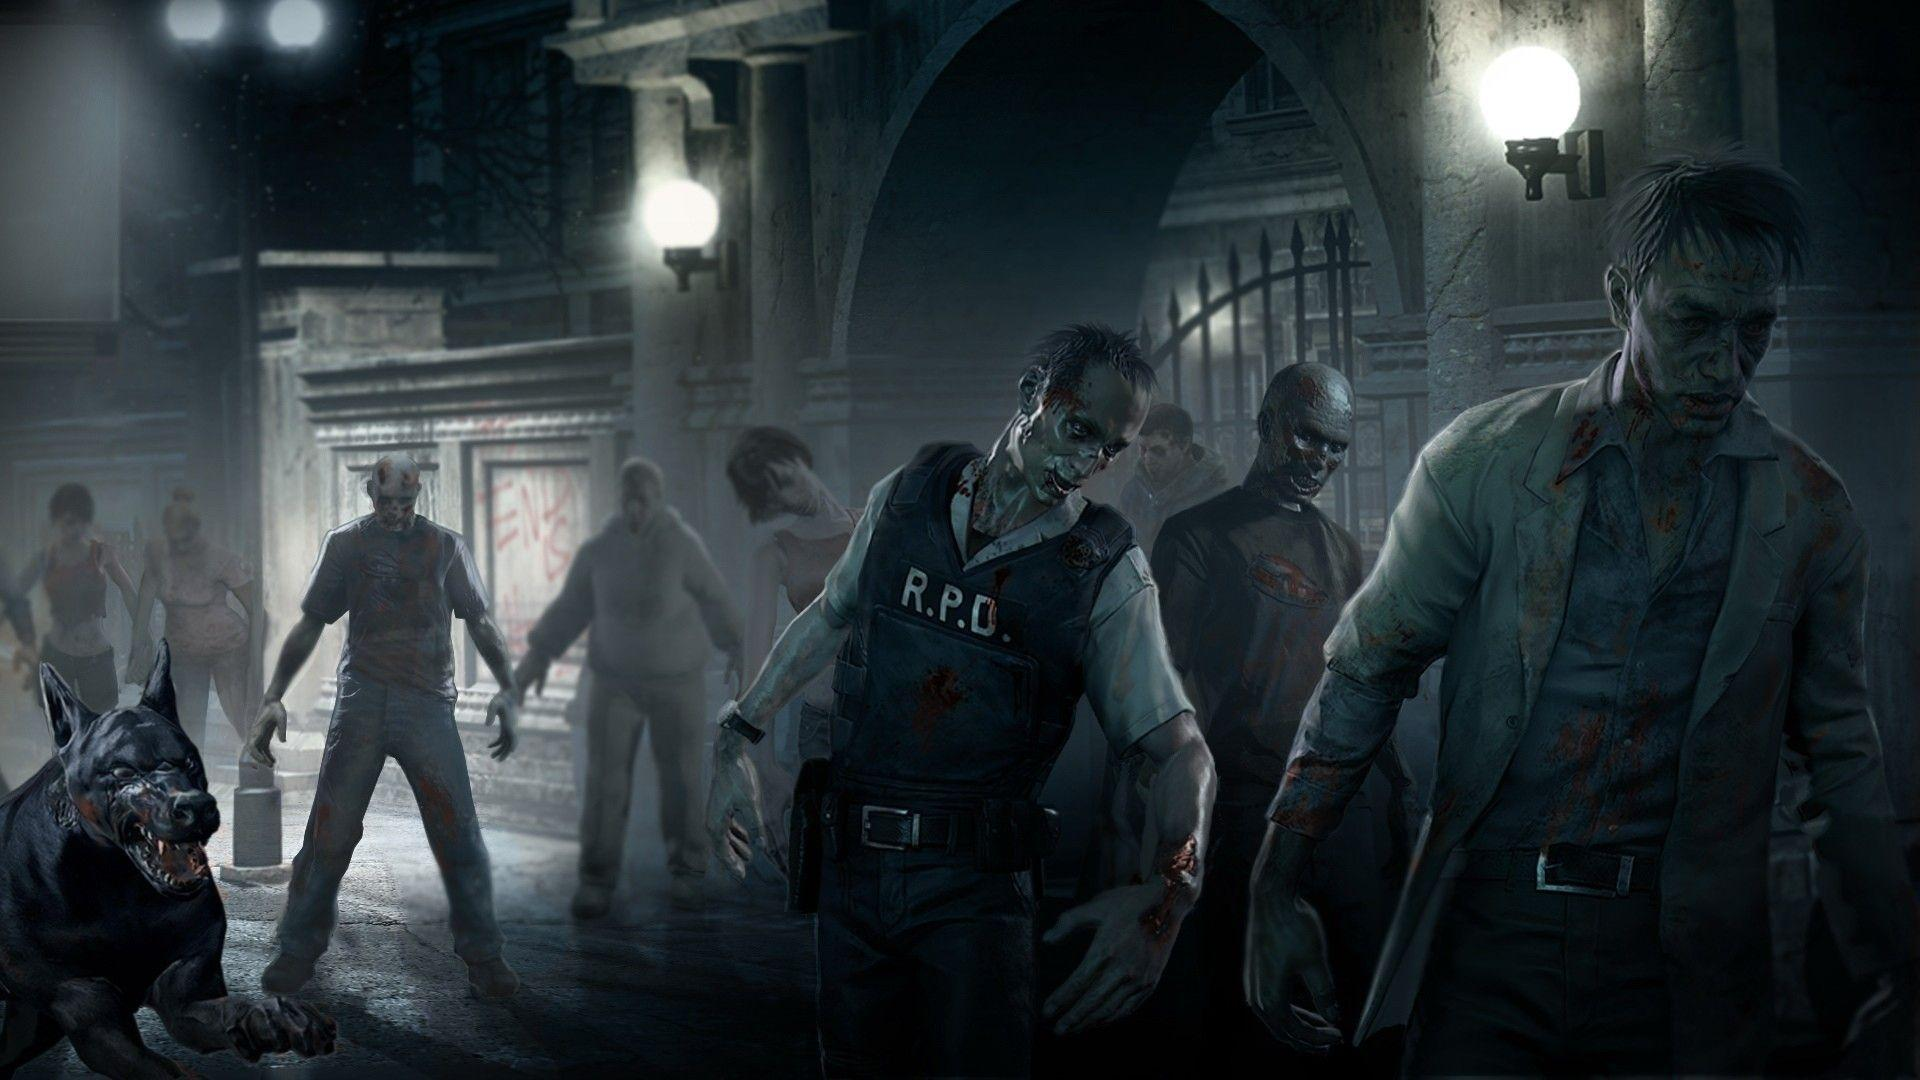 Zombies Wallpapers Hd Wallpaper Cave